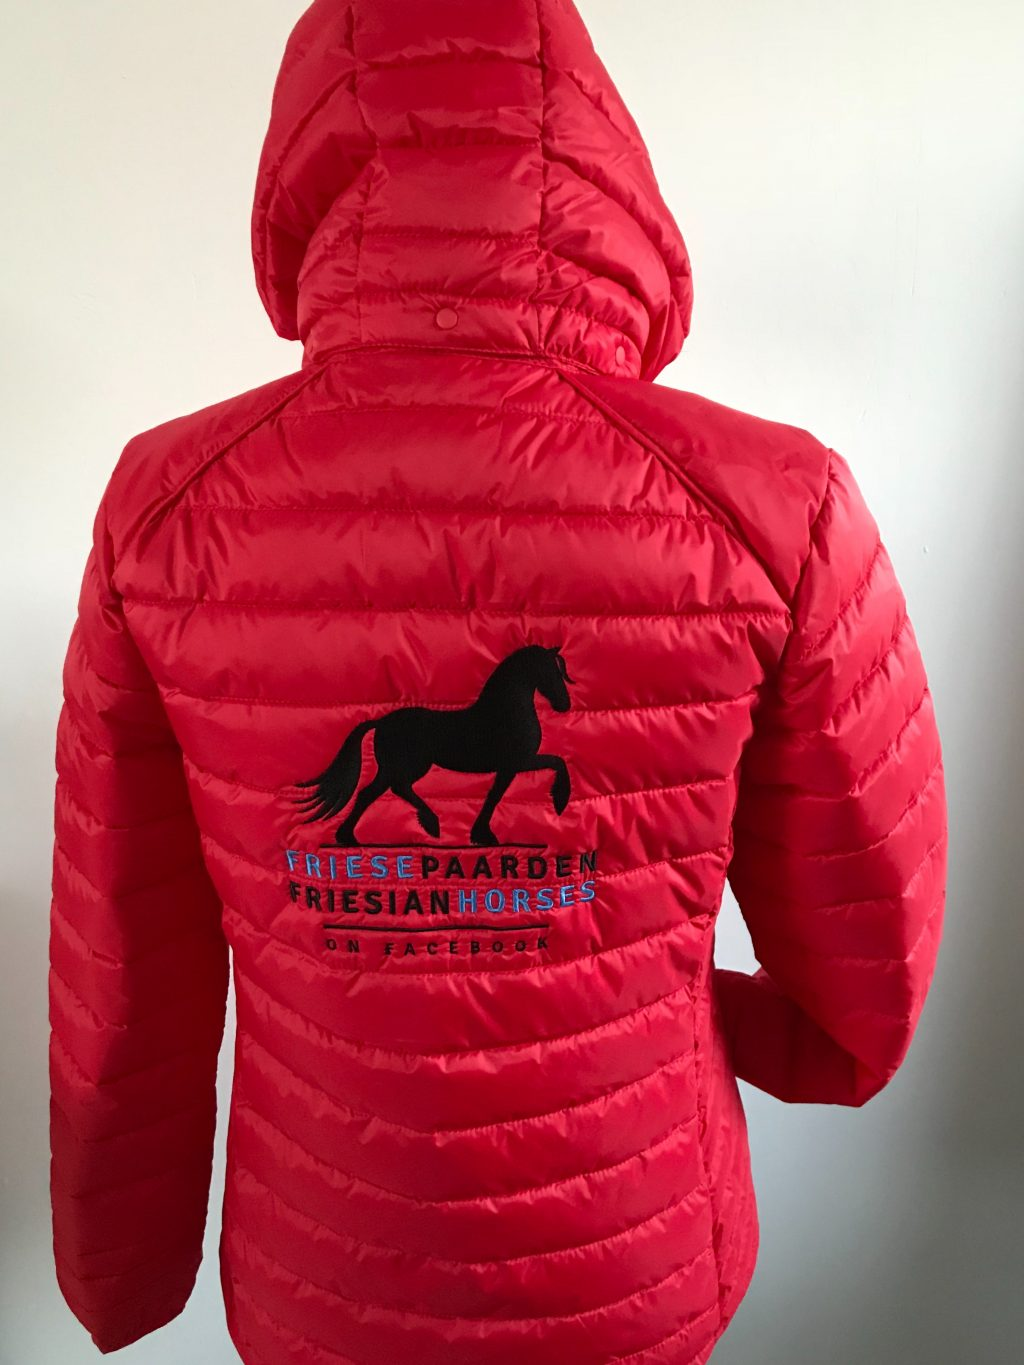 Equestrian sport, quilted mens jacked, red, Friese Paarden / Friesian Horses, by ZijHaven3, borduurstudio Lemmer